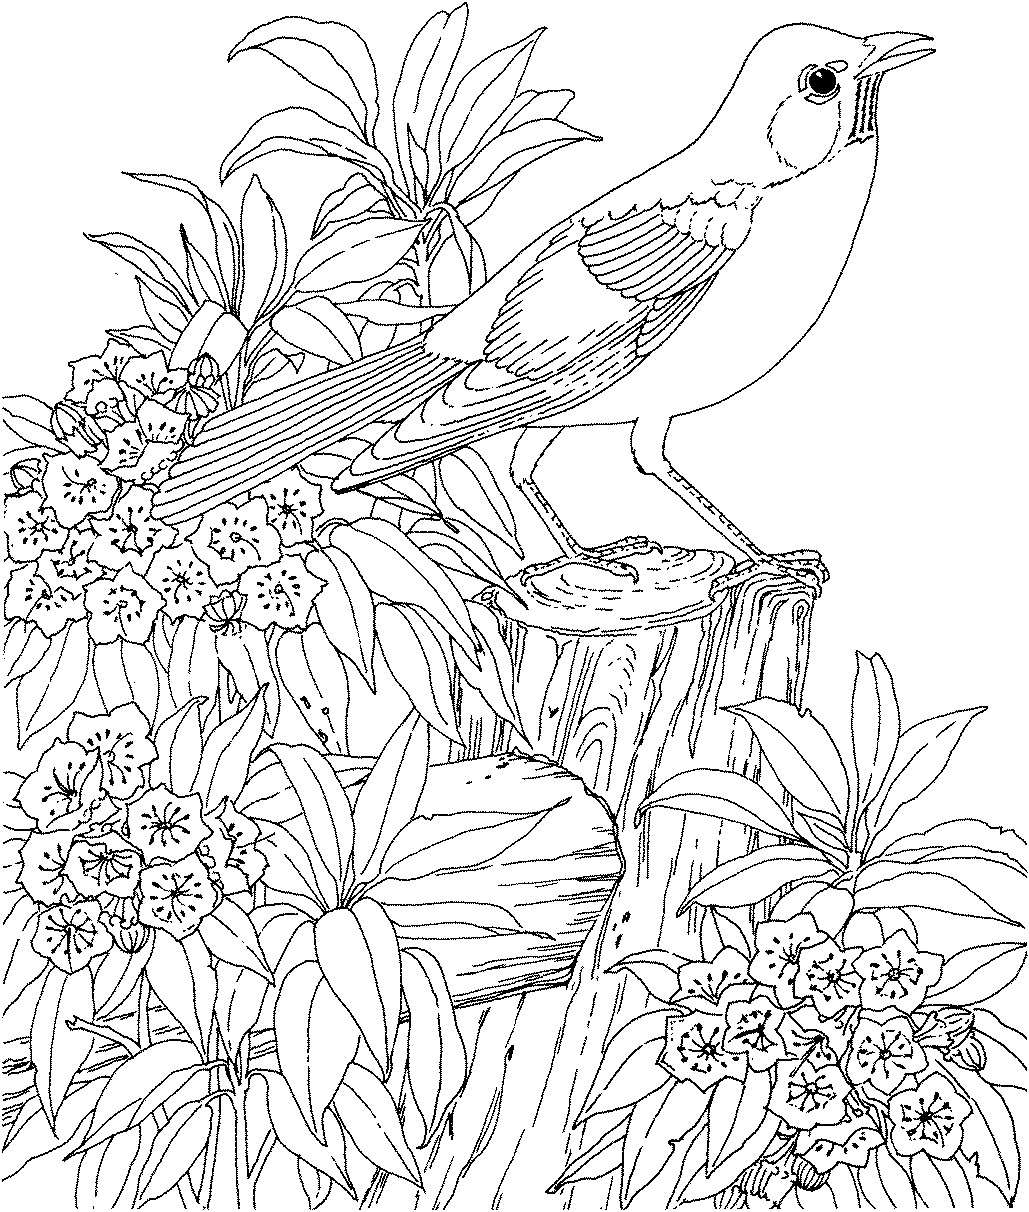 Coloring pages for teenagers difficult mermaid only for Hard coloring pages for teenagers